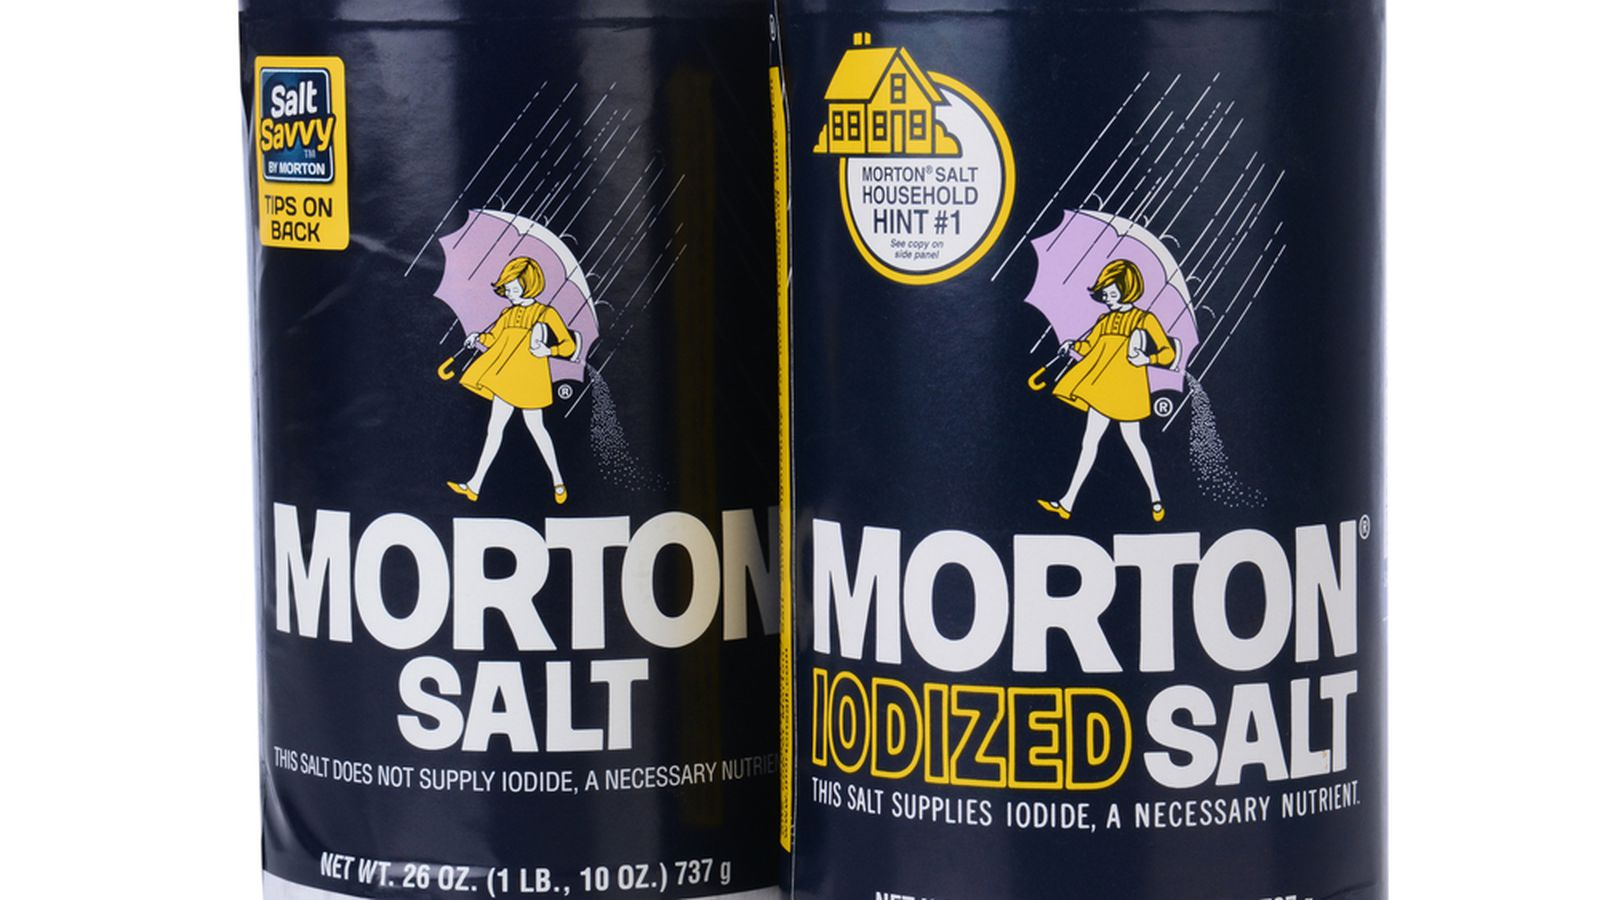 Eons Of Bad Luck Produced As Morton Salt Wall Collapses